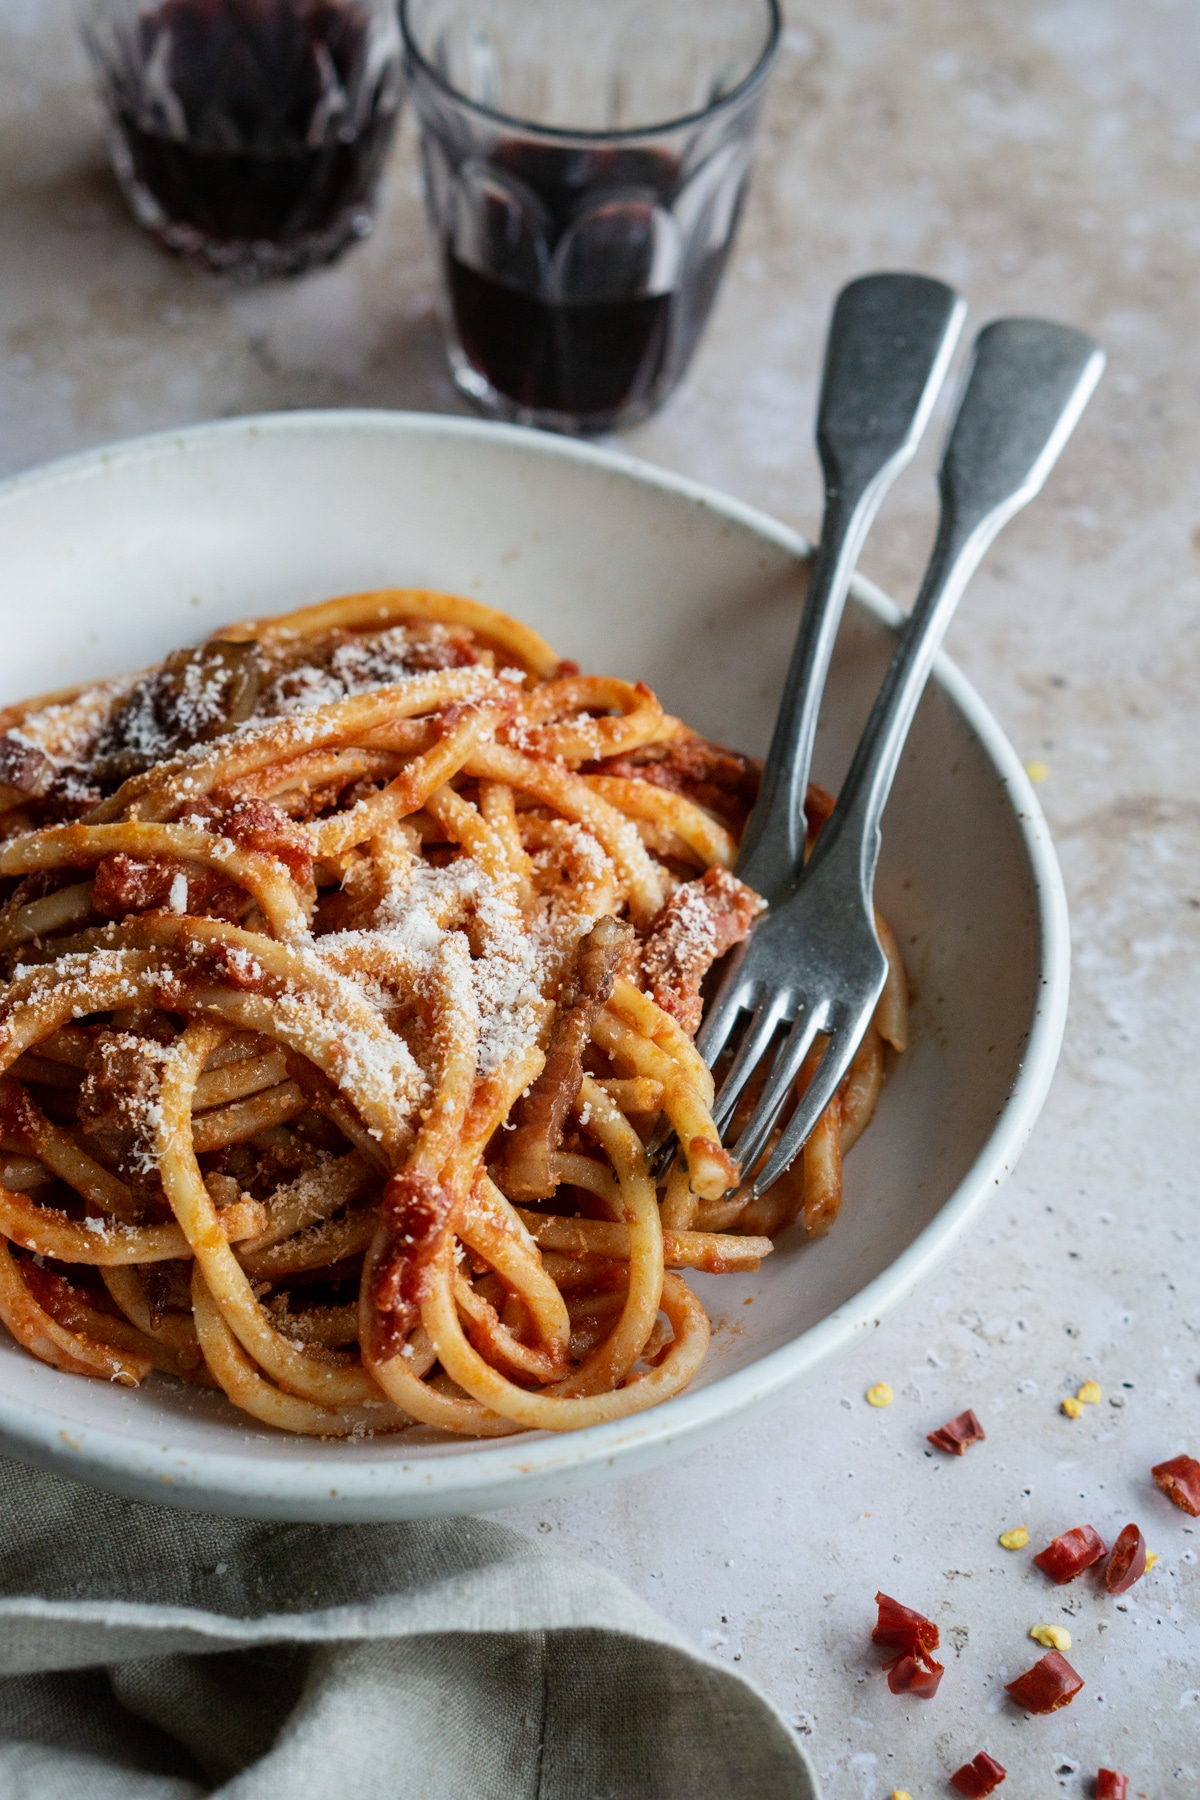 Pasta amatriciana in a bowl with glasses of red wine in the background